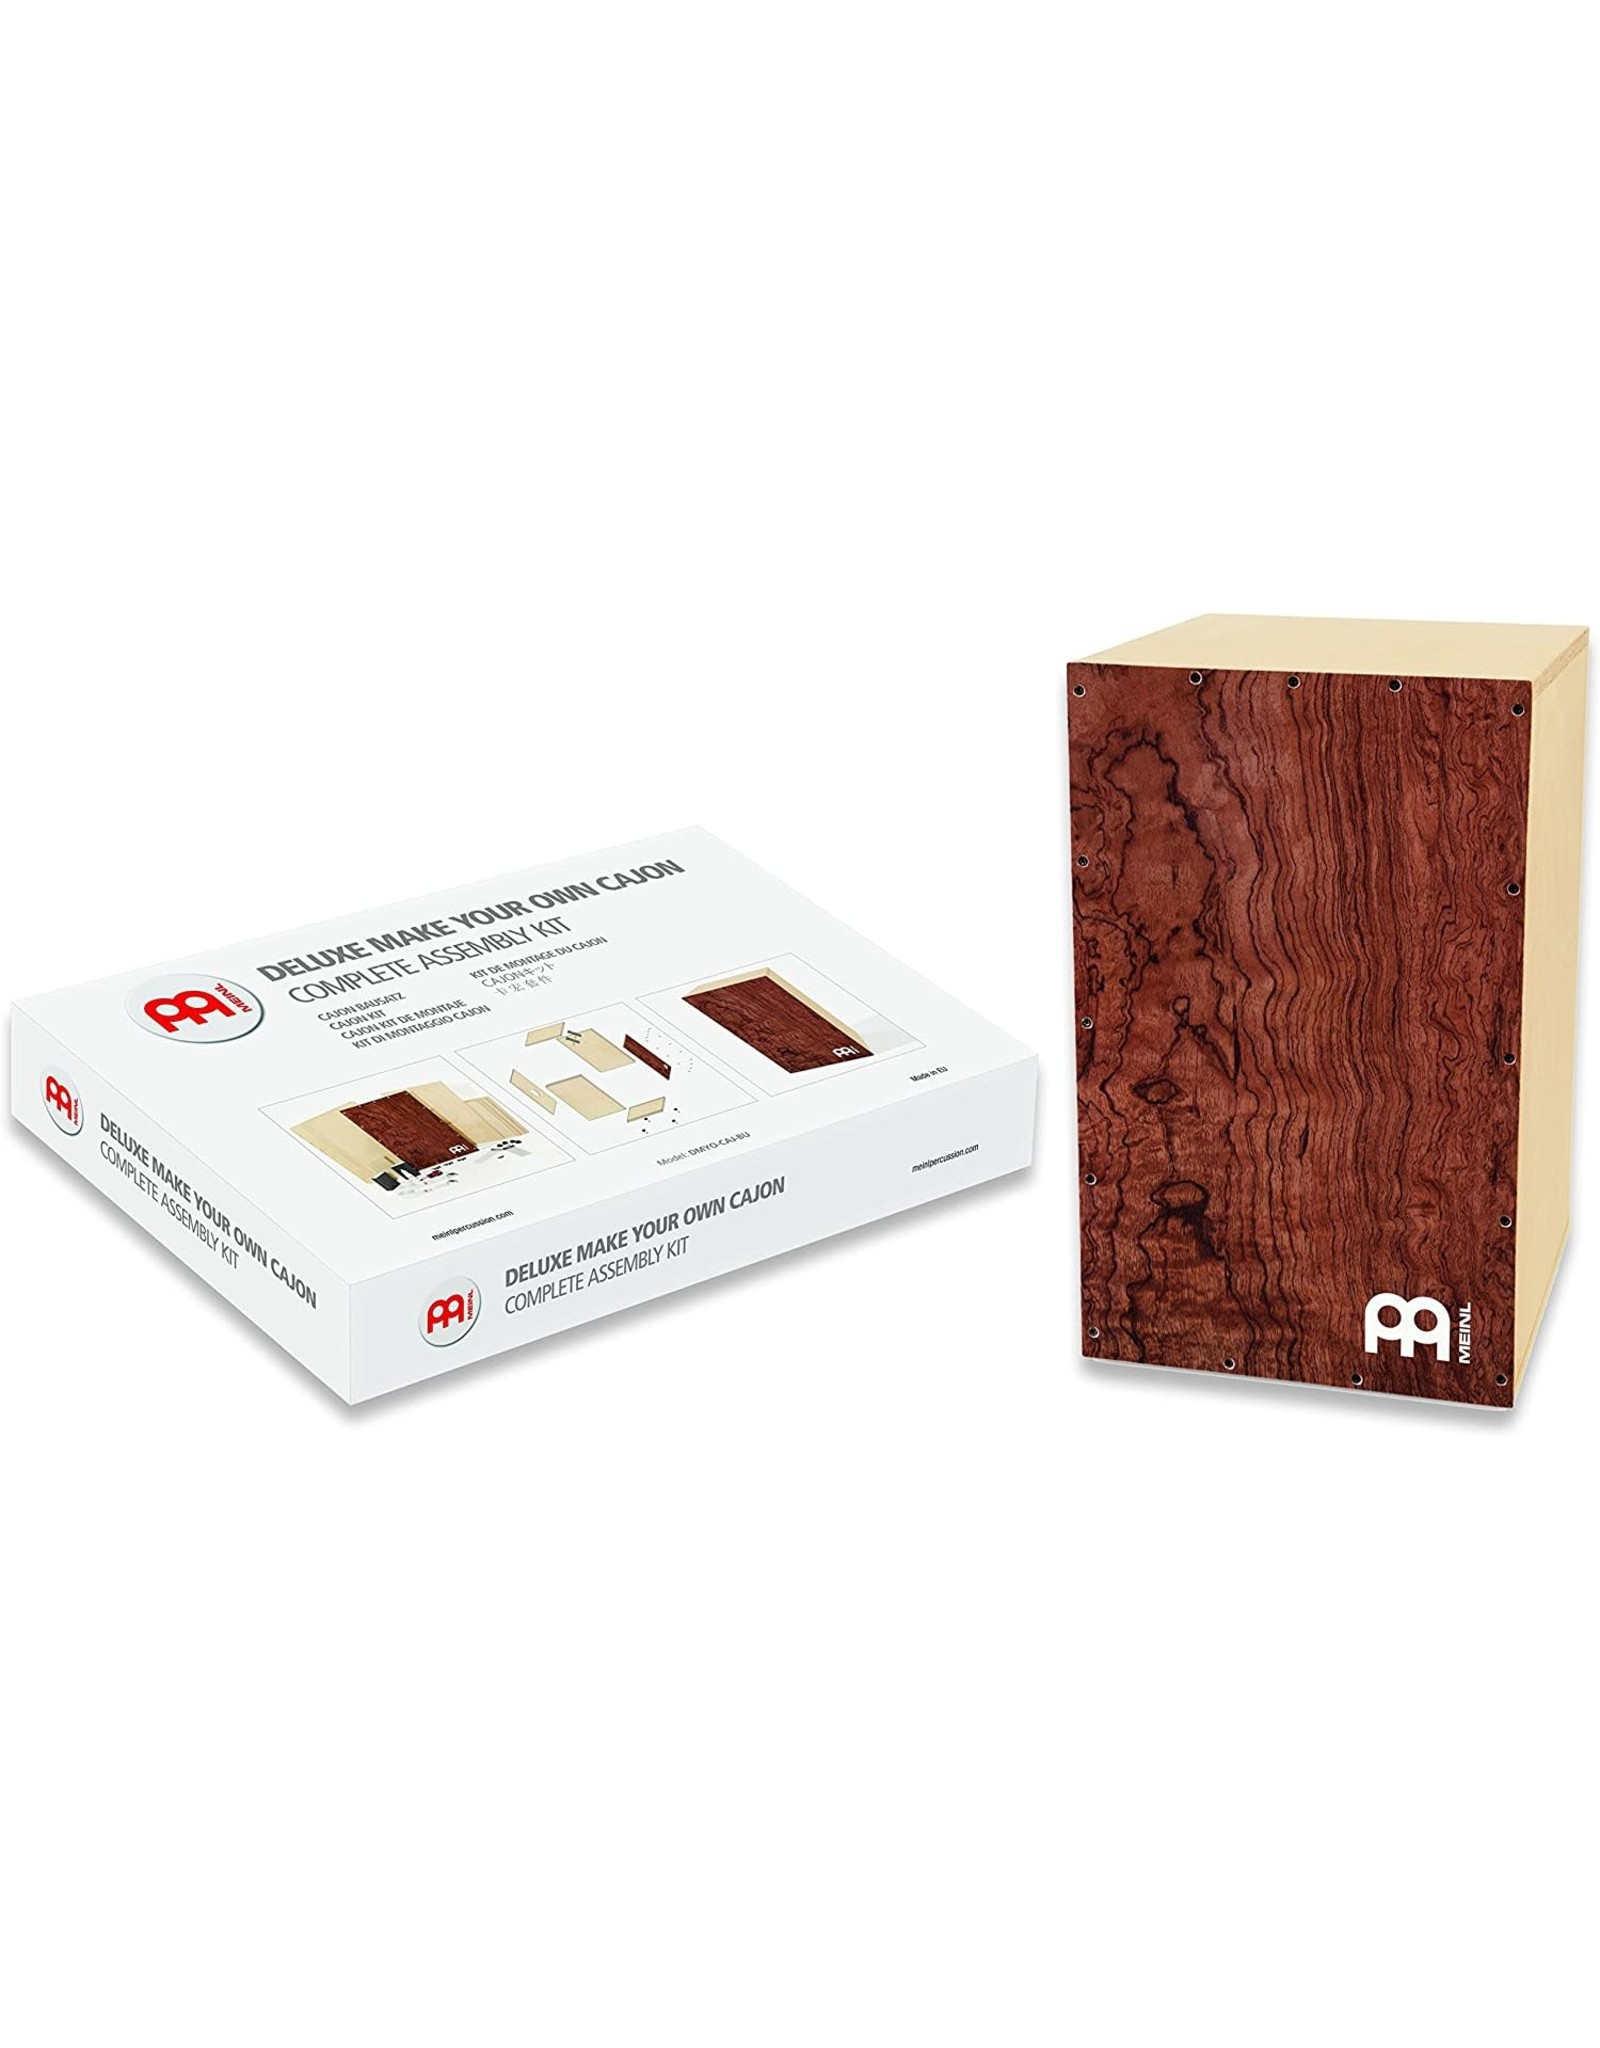 Meinl Meinl Kit fabrication cajon